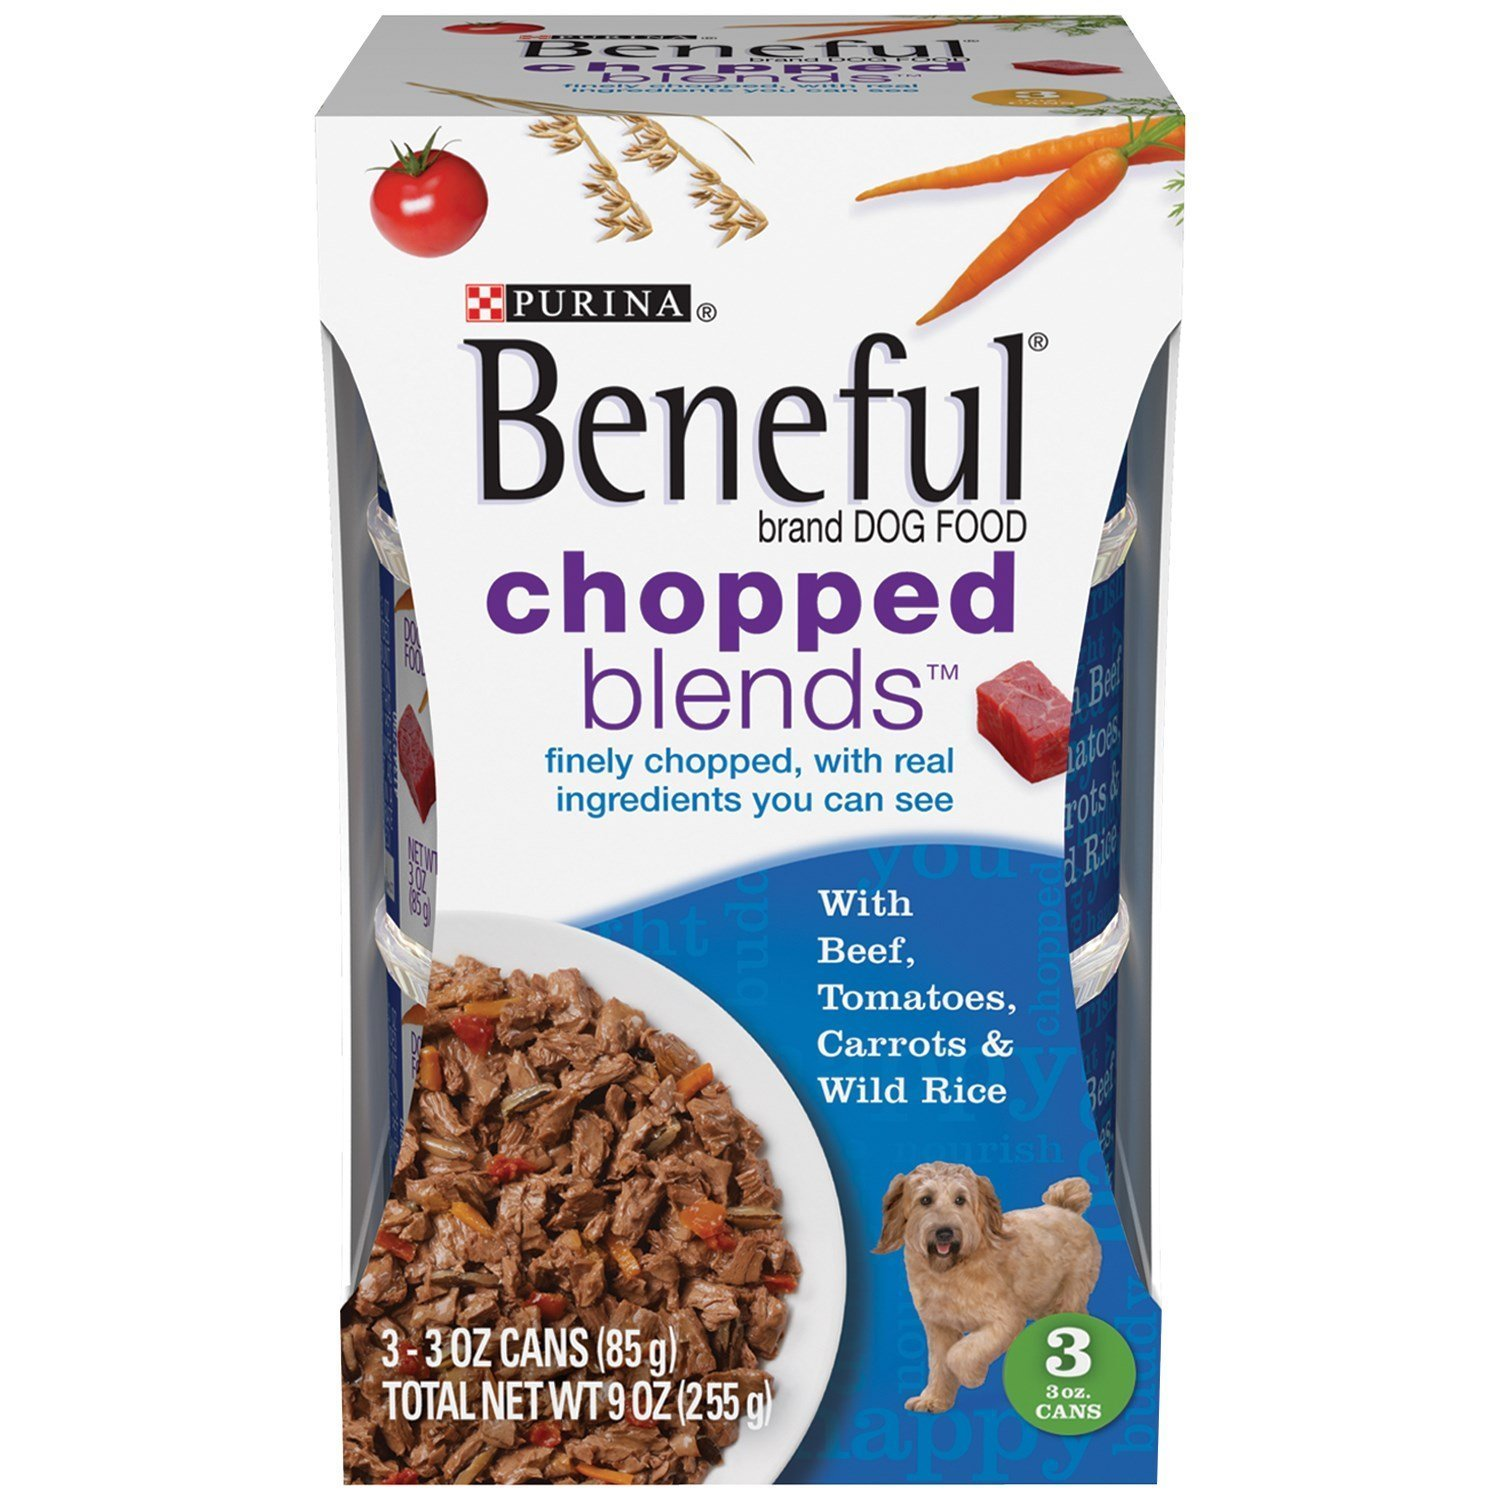 Beneful Chopped Blends with Beef, Tomatoes, Carrots and Wild Rice 9 Ounce Pack of 8